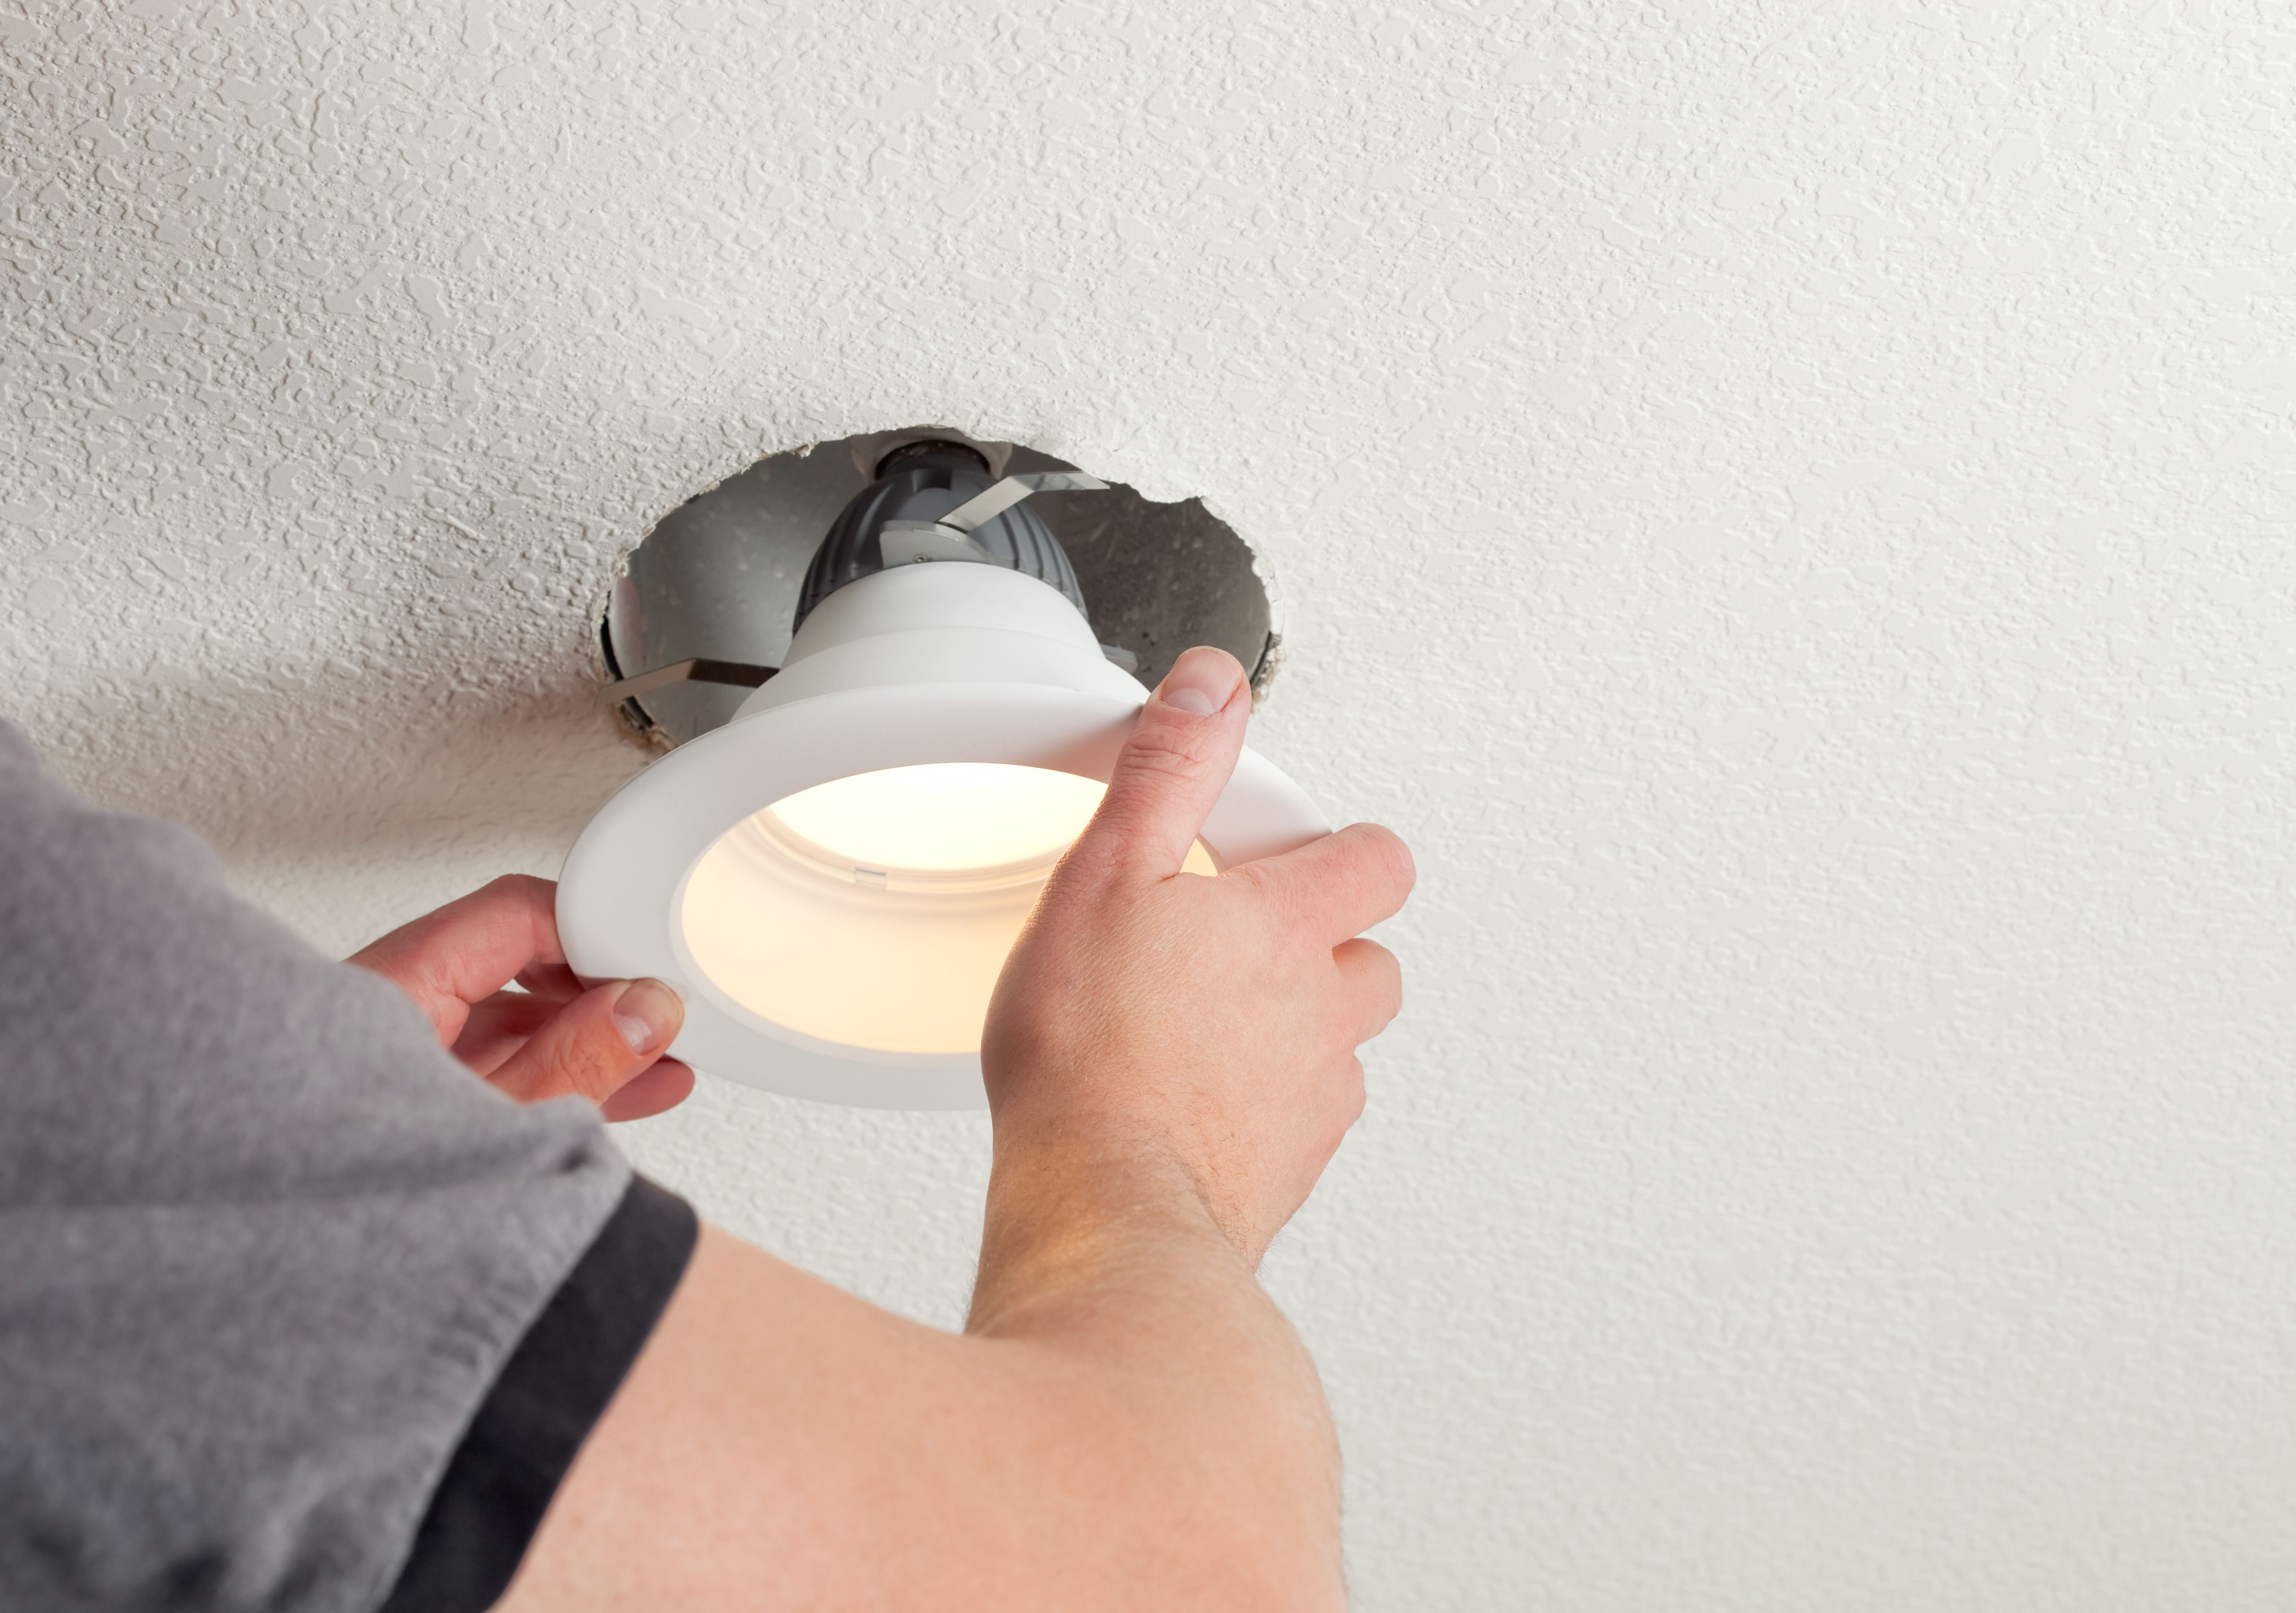 Installing Outdoor Recessed Lighting How To Fix Recessed Lights That Fall Down